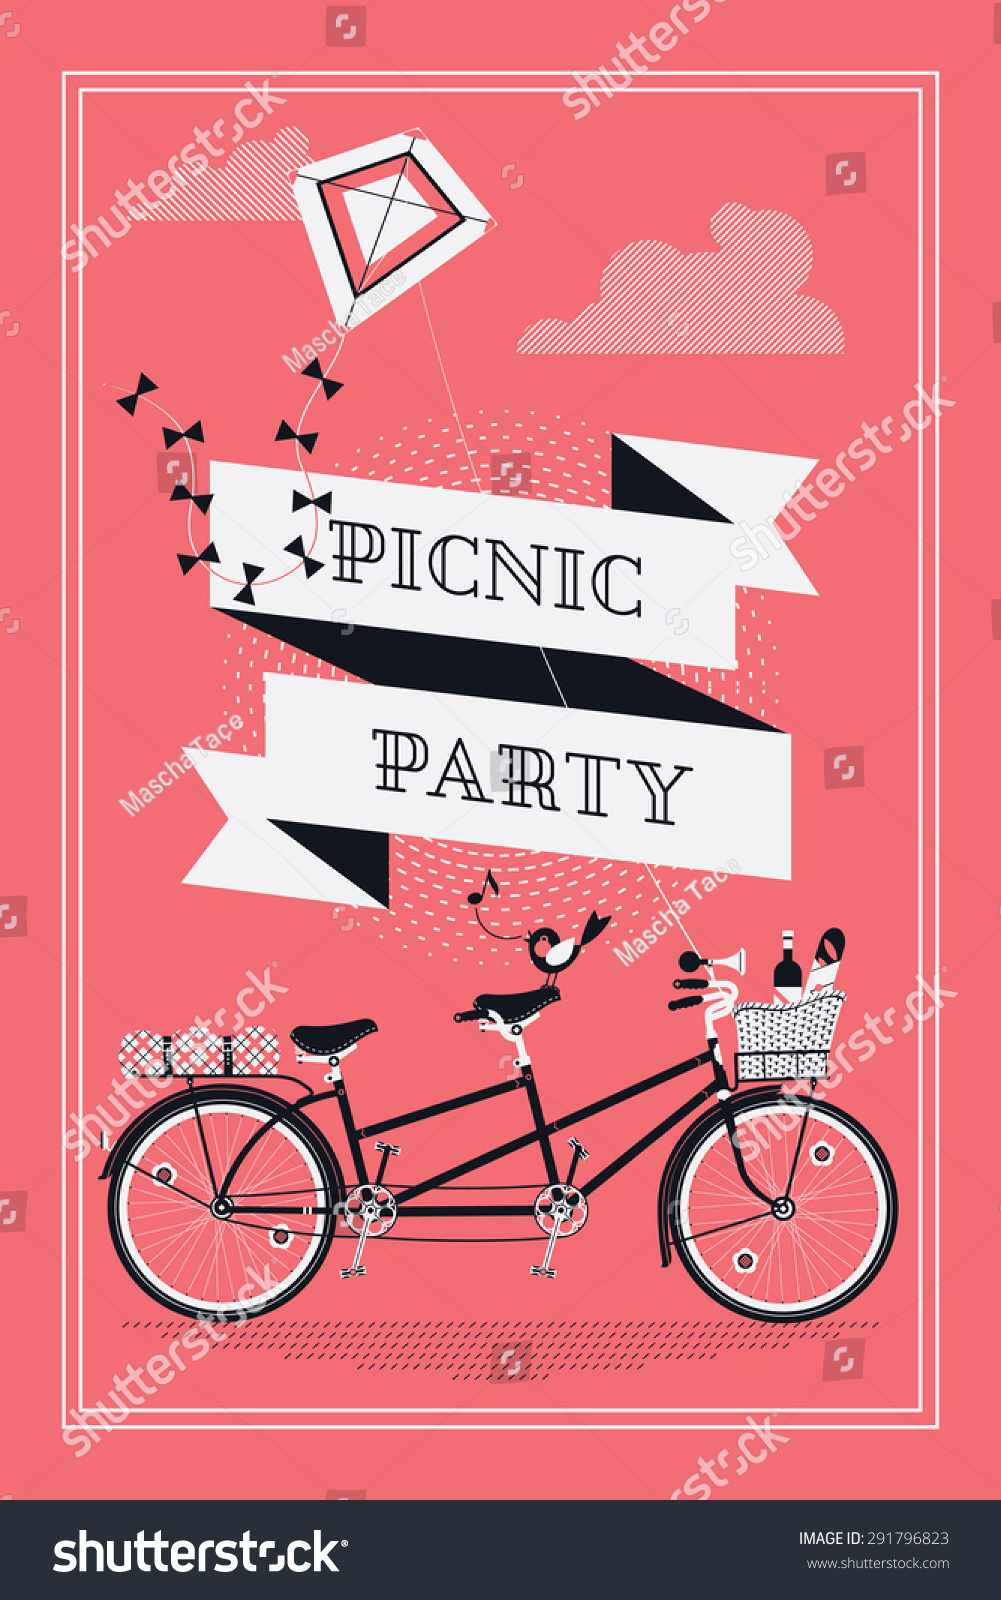 Fantastic Teddy Bear Picnic Party Invites Sketch - Invitations and ...